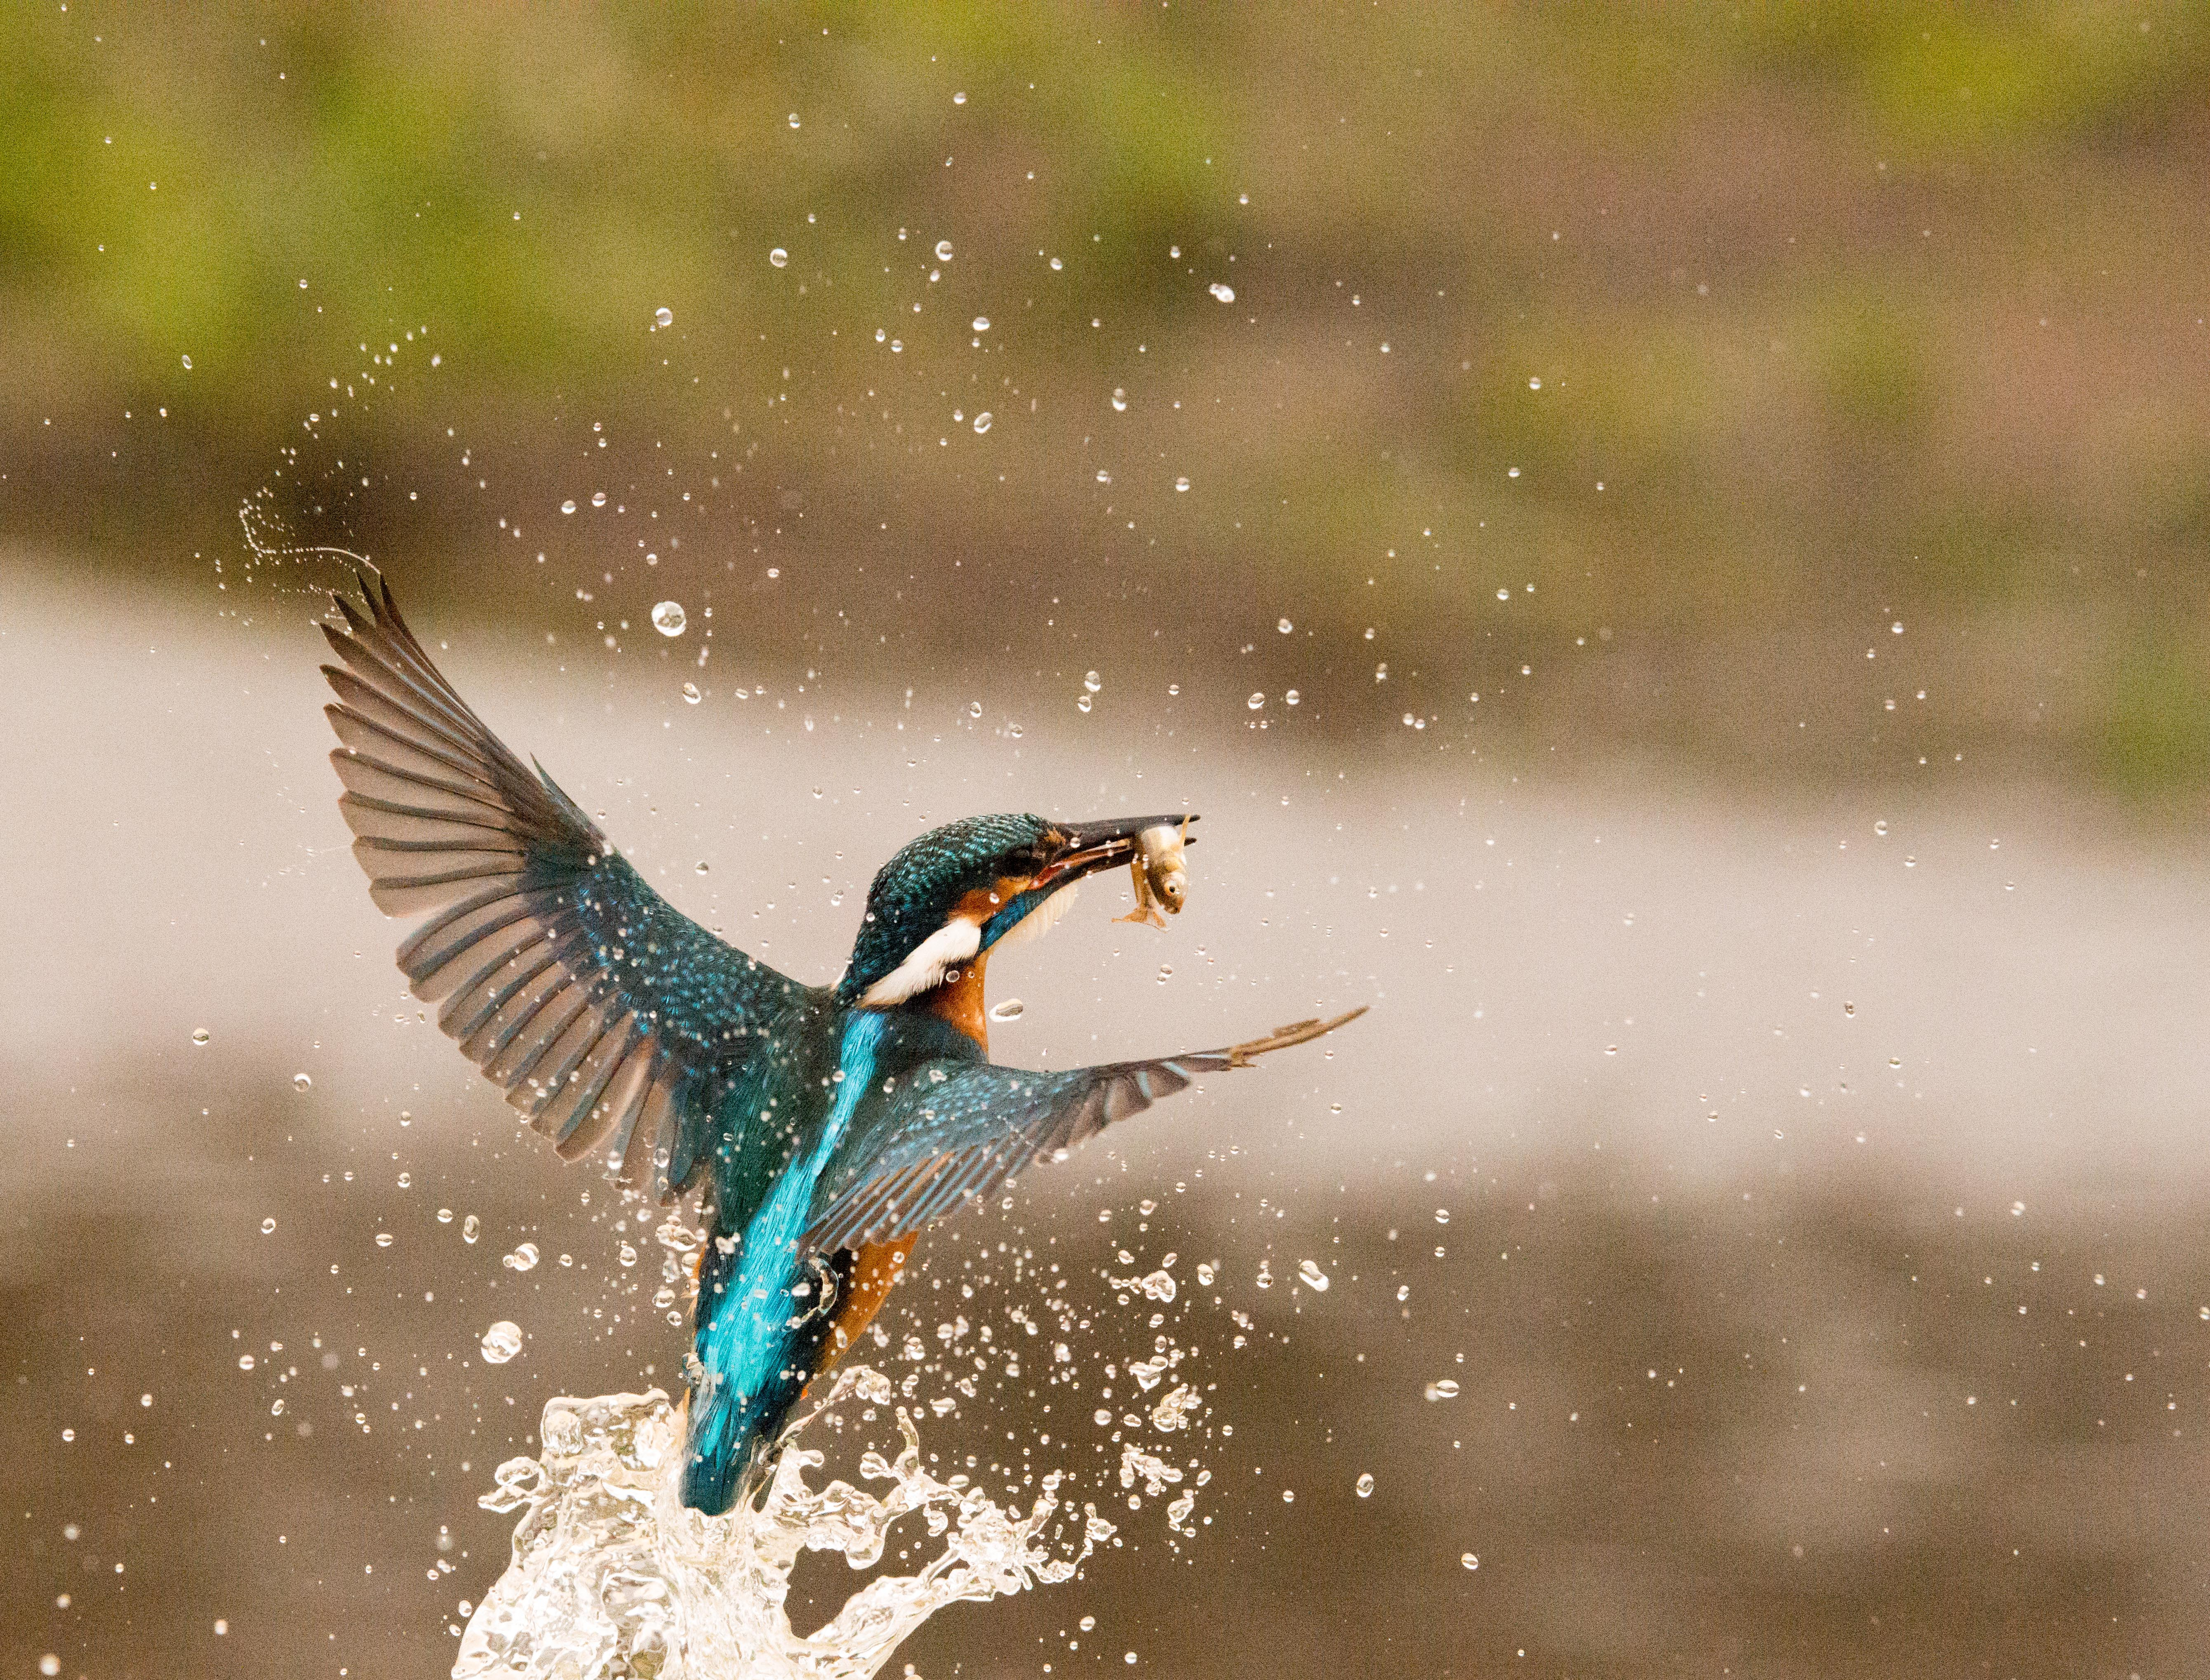 Kingfisher rising from water-6362.jpg